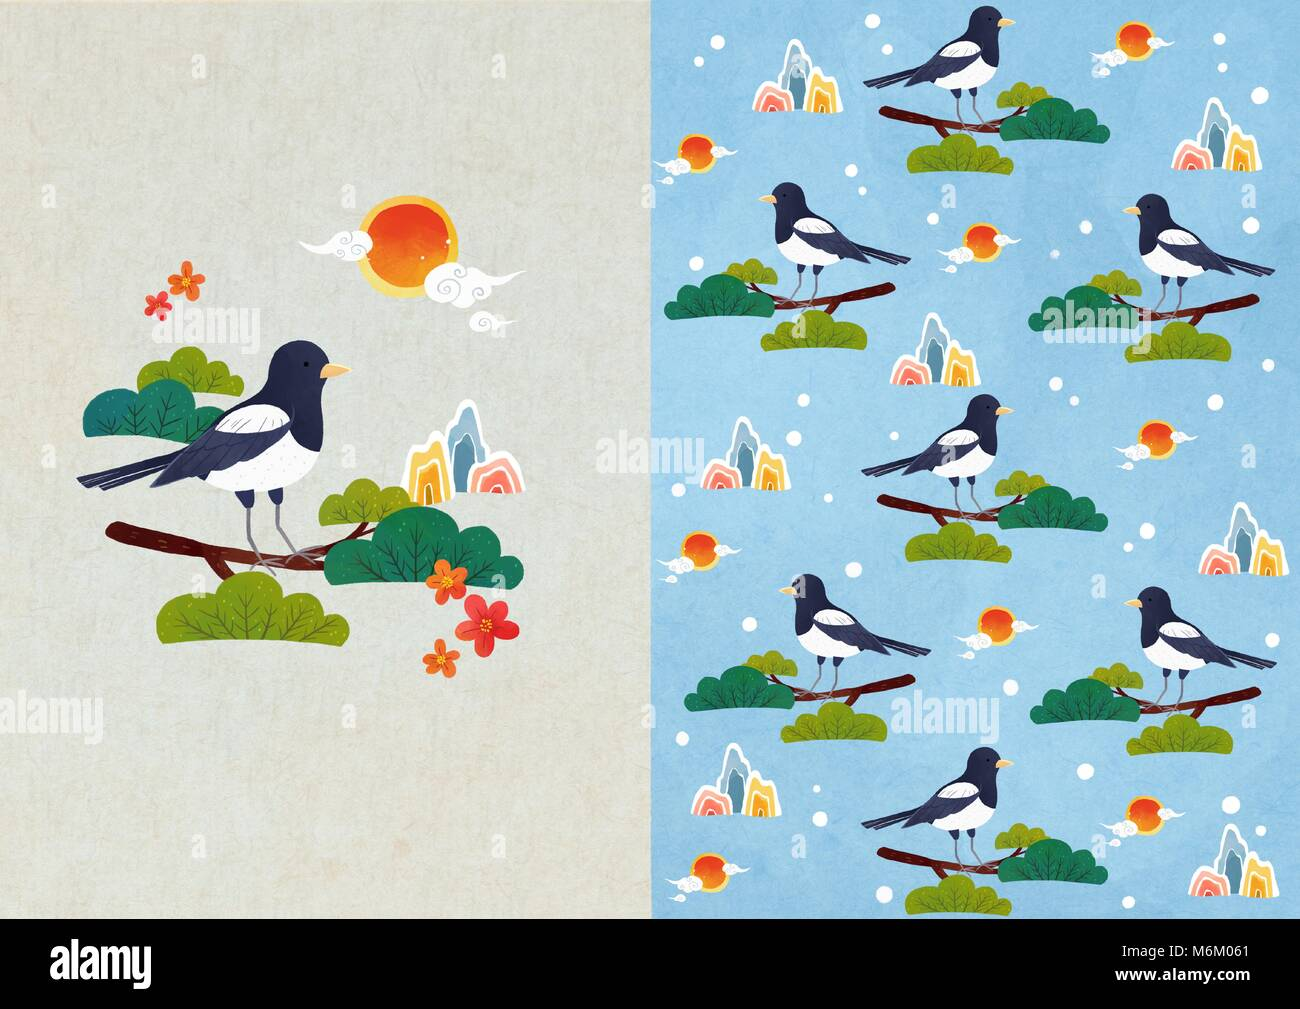 Vector pattern design related of winter season - a lucky bag, magpie, Christmas object and so on. 008 - Stock Image